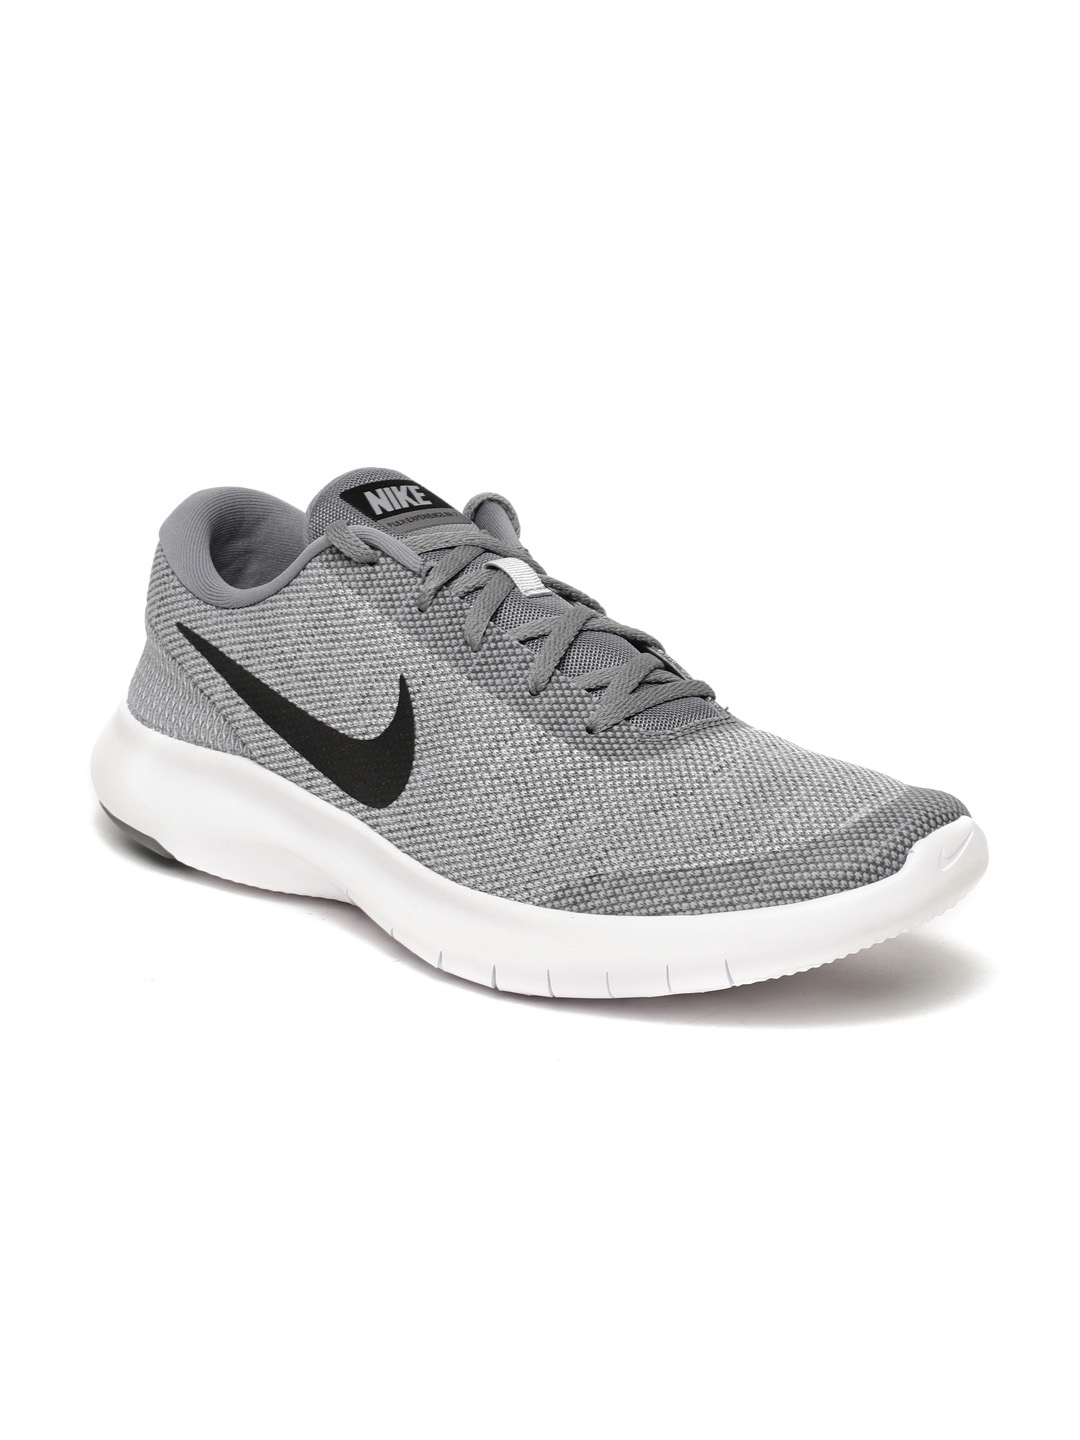 f06247a56482 Buy Nike Men Grey Flex Experience RN 7 Running Shoes - Sports Shoes ...